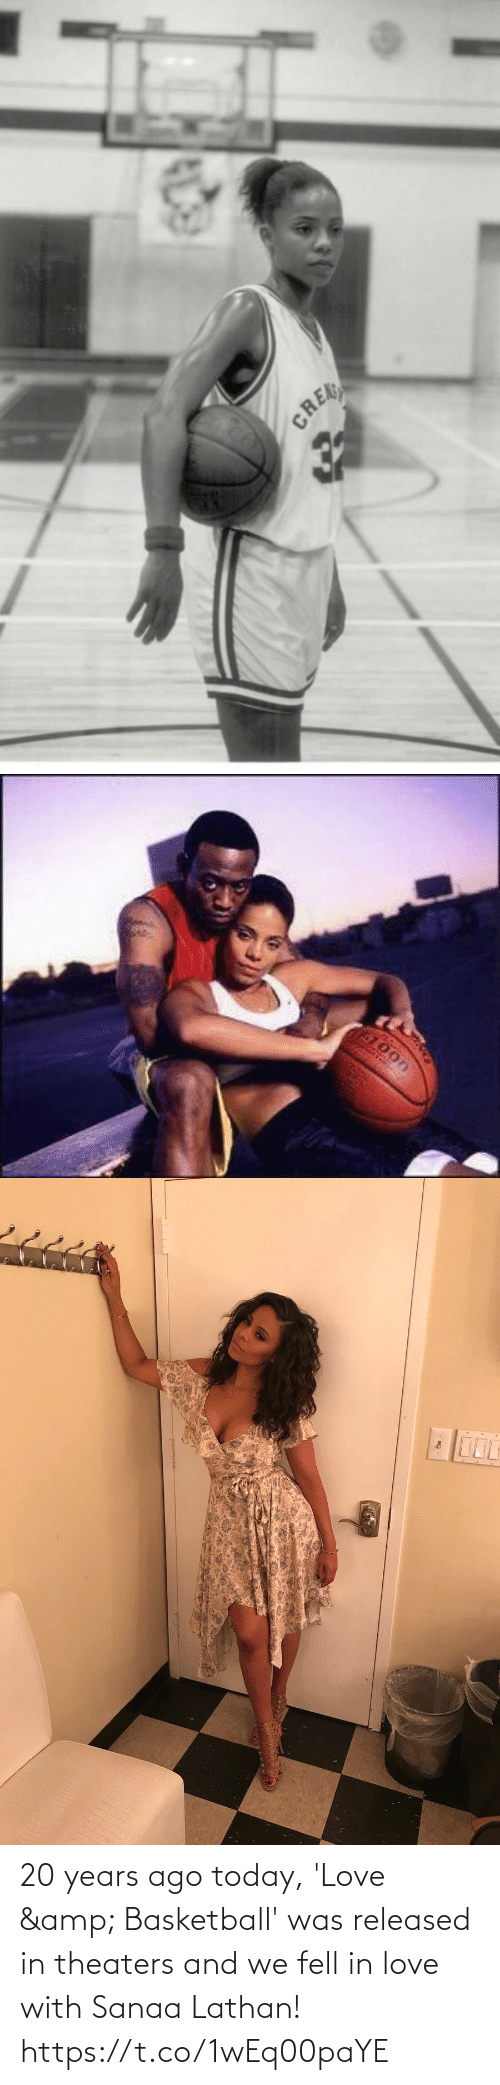 Basketball, Love, and Memes: 20 years ago today, 'Love & Basketball' was released in theaters and we fell in love with Sanaa Lathan! https://t.co/1wEq00paYE